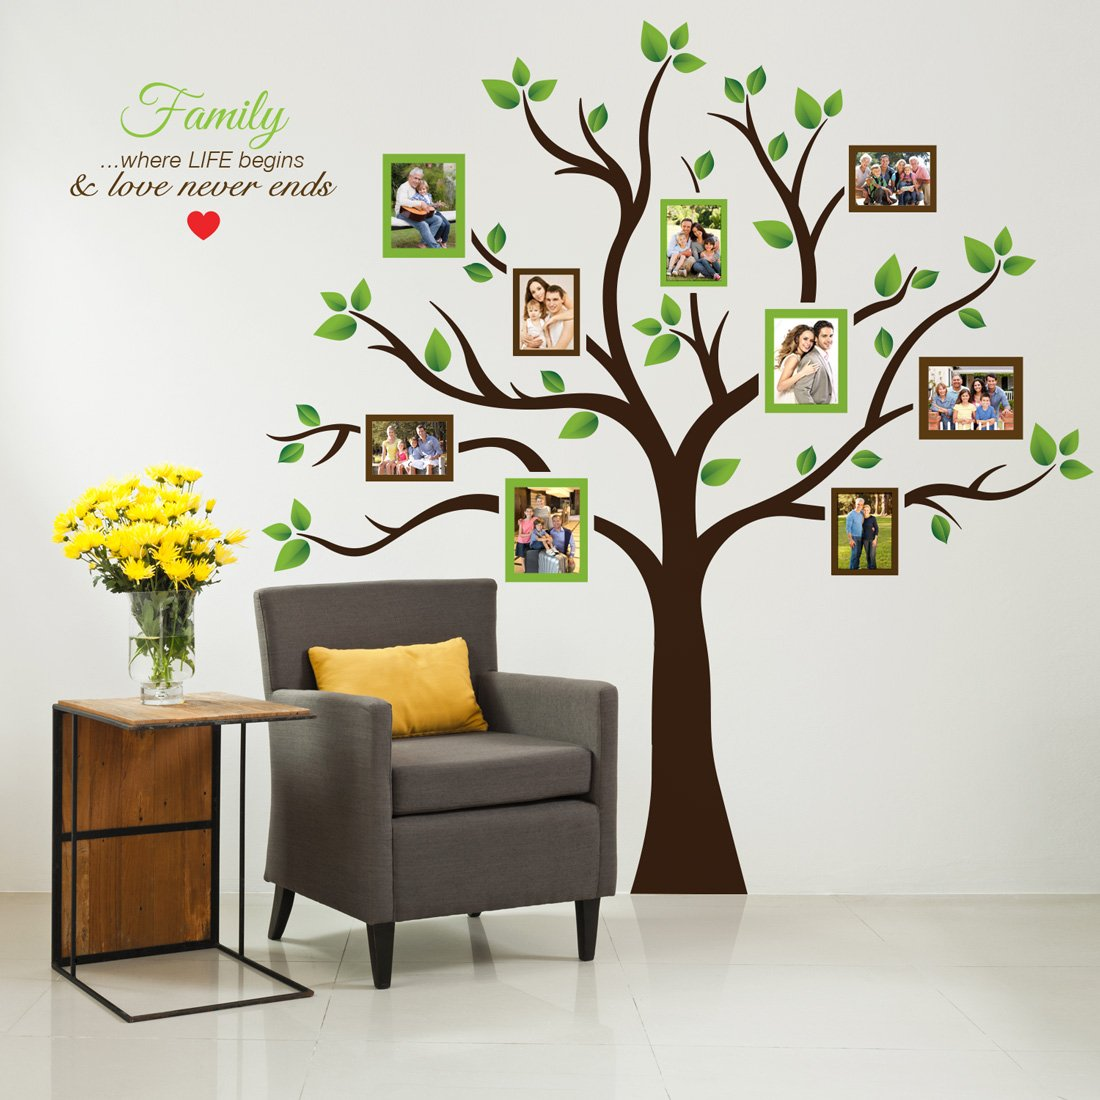 Timber Artbox Large Family Tree Photo Frames Wall Decal - The Sweetest Highlight of Your Home and Family by TIMBER ARTBOX (Image #2)